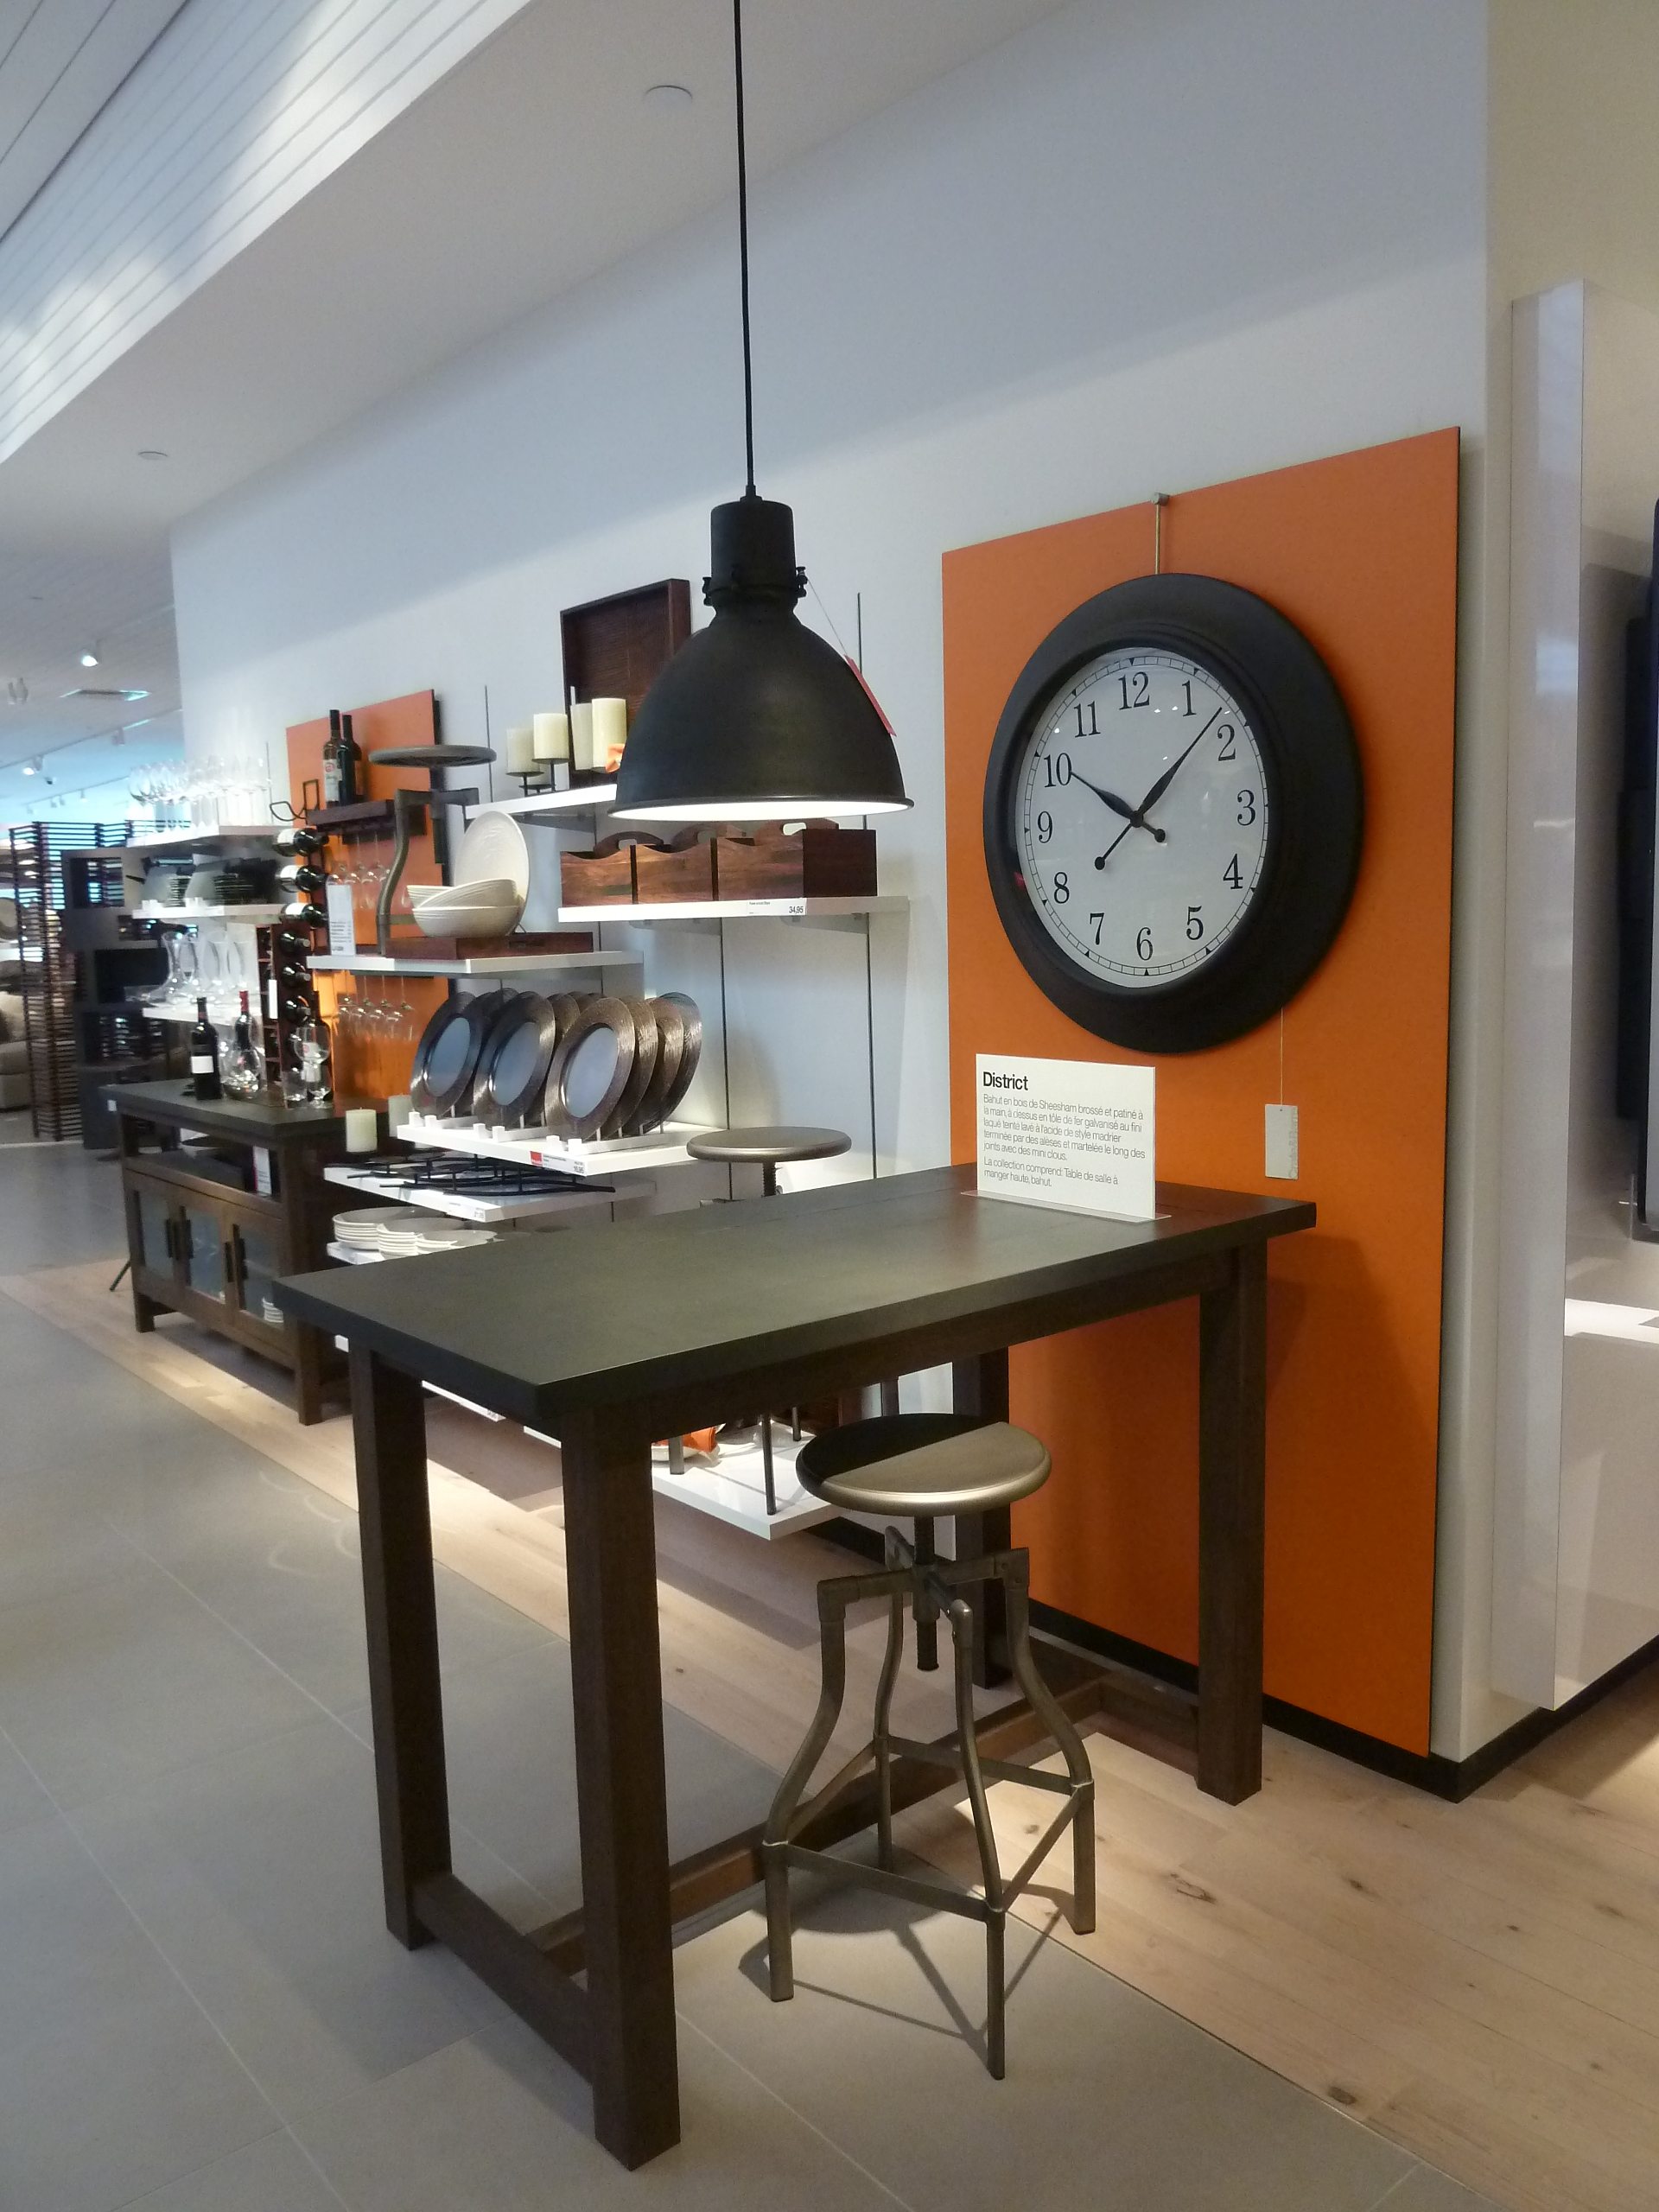 Crate barrel ouvre montr al son premier magasin for Article de cuisine montreal